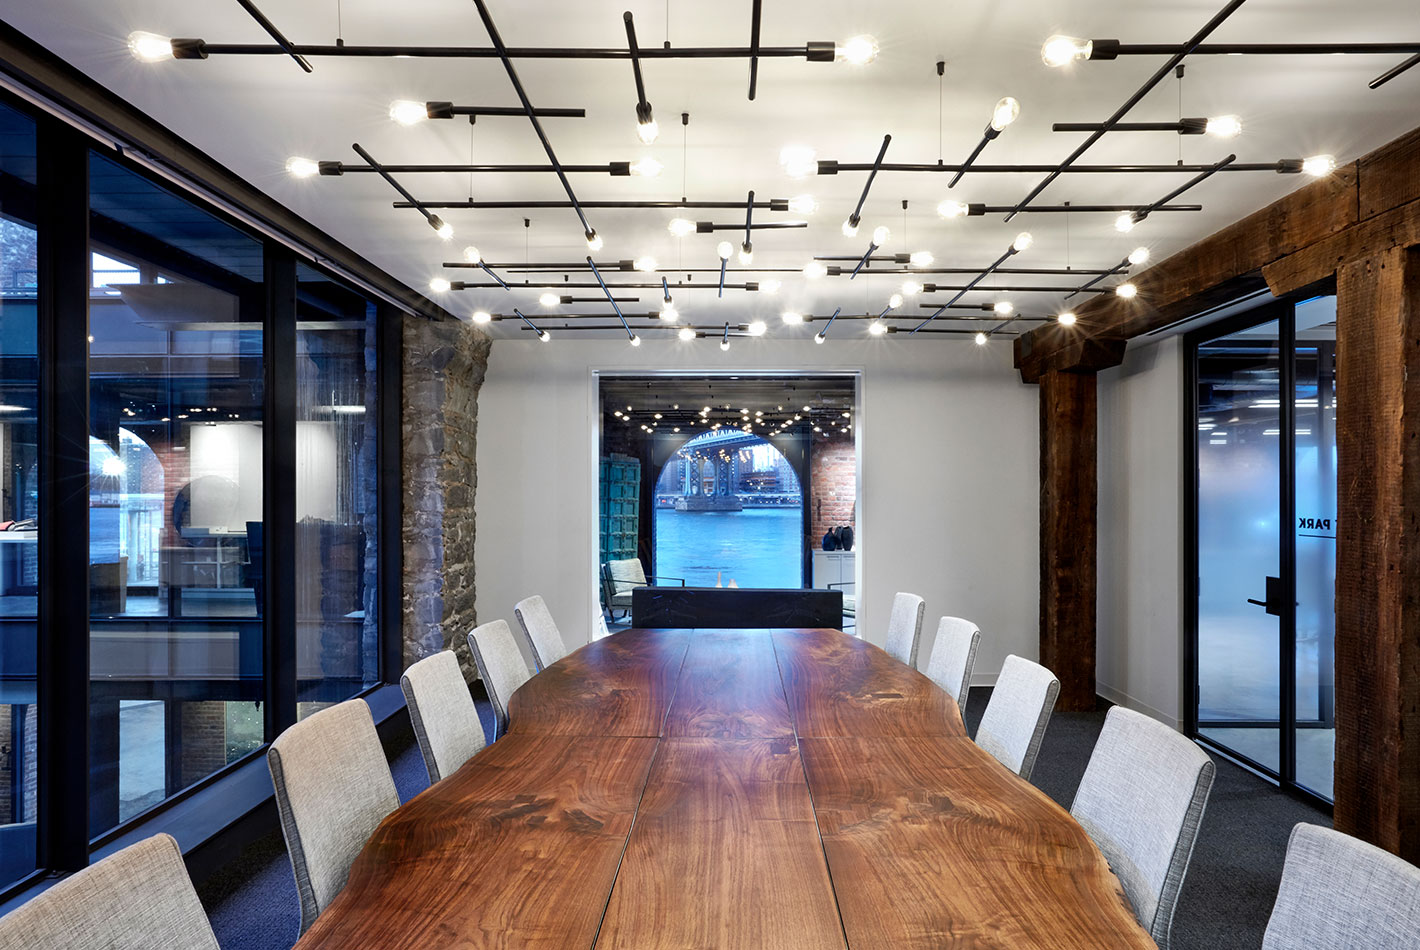 A live-edge wooden table runs through the center of the conference room at West Elm Headquarters. The ceiling light fixtures create a grid pattern.